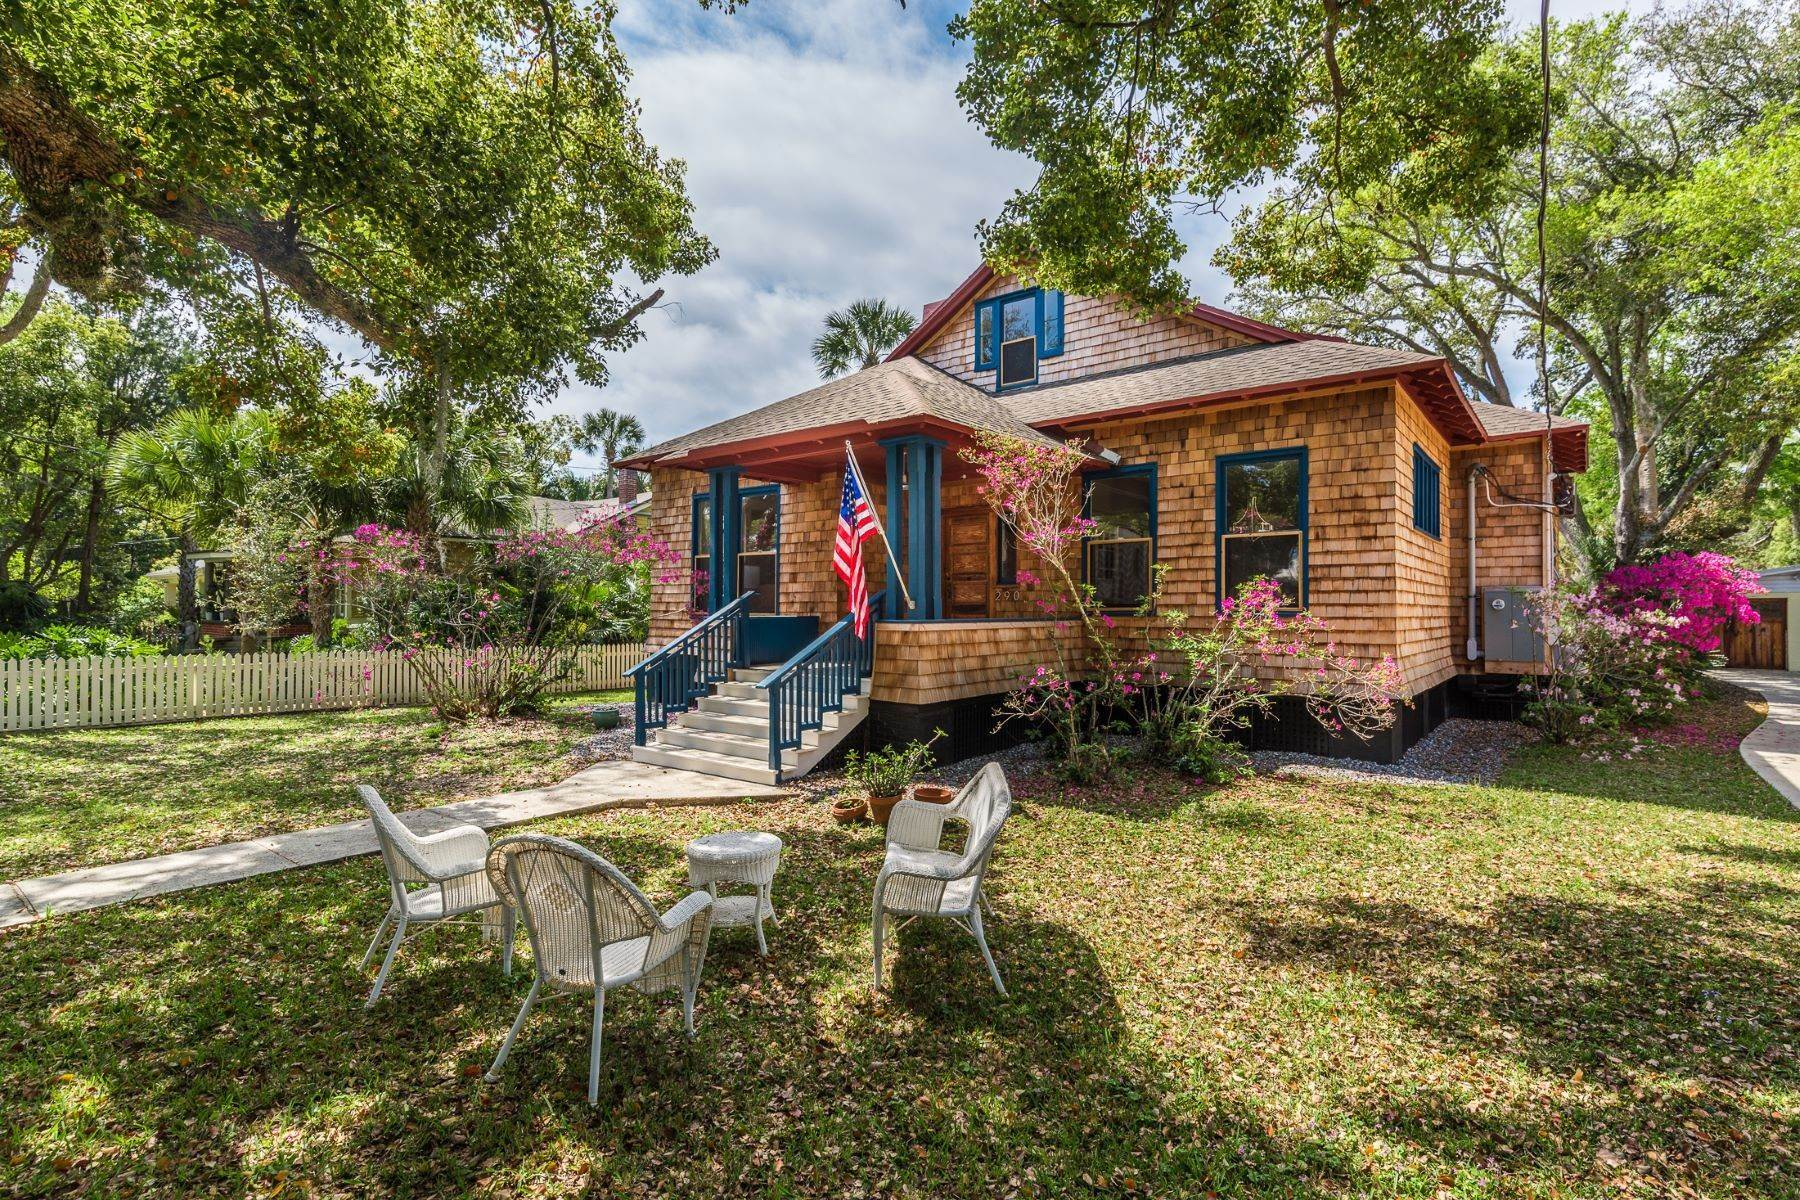 Single Family Homes for Sale at St. George Street Historical Home 290 St George Street St. Augustine, Florida 32084 United States